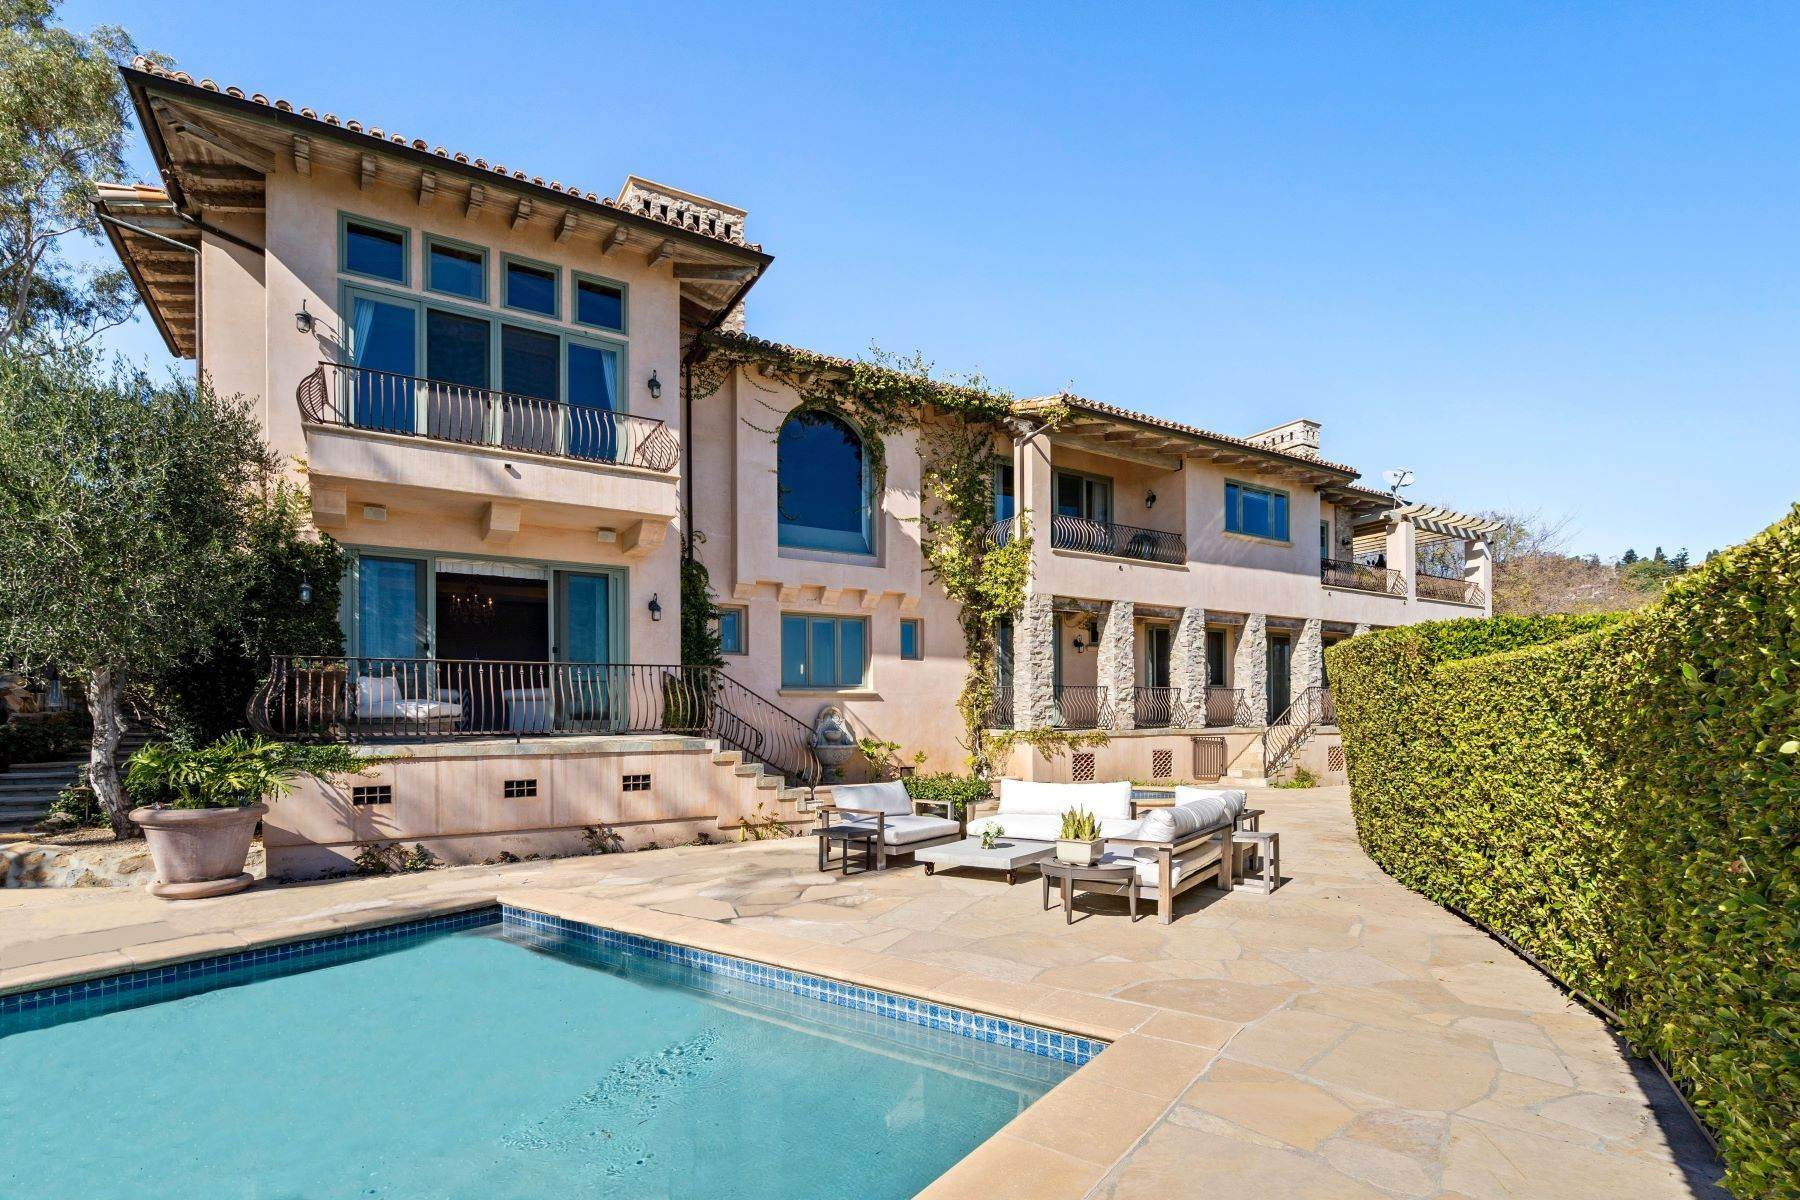 Single Family Homes for Active at Modern Italian-Style Villa 27856 West Winding Way Malibu, California 90265 United States